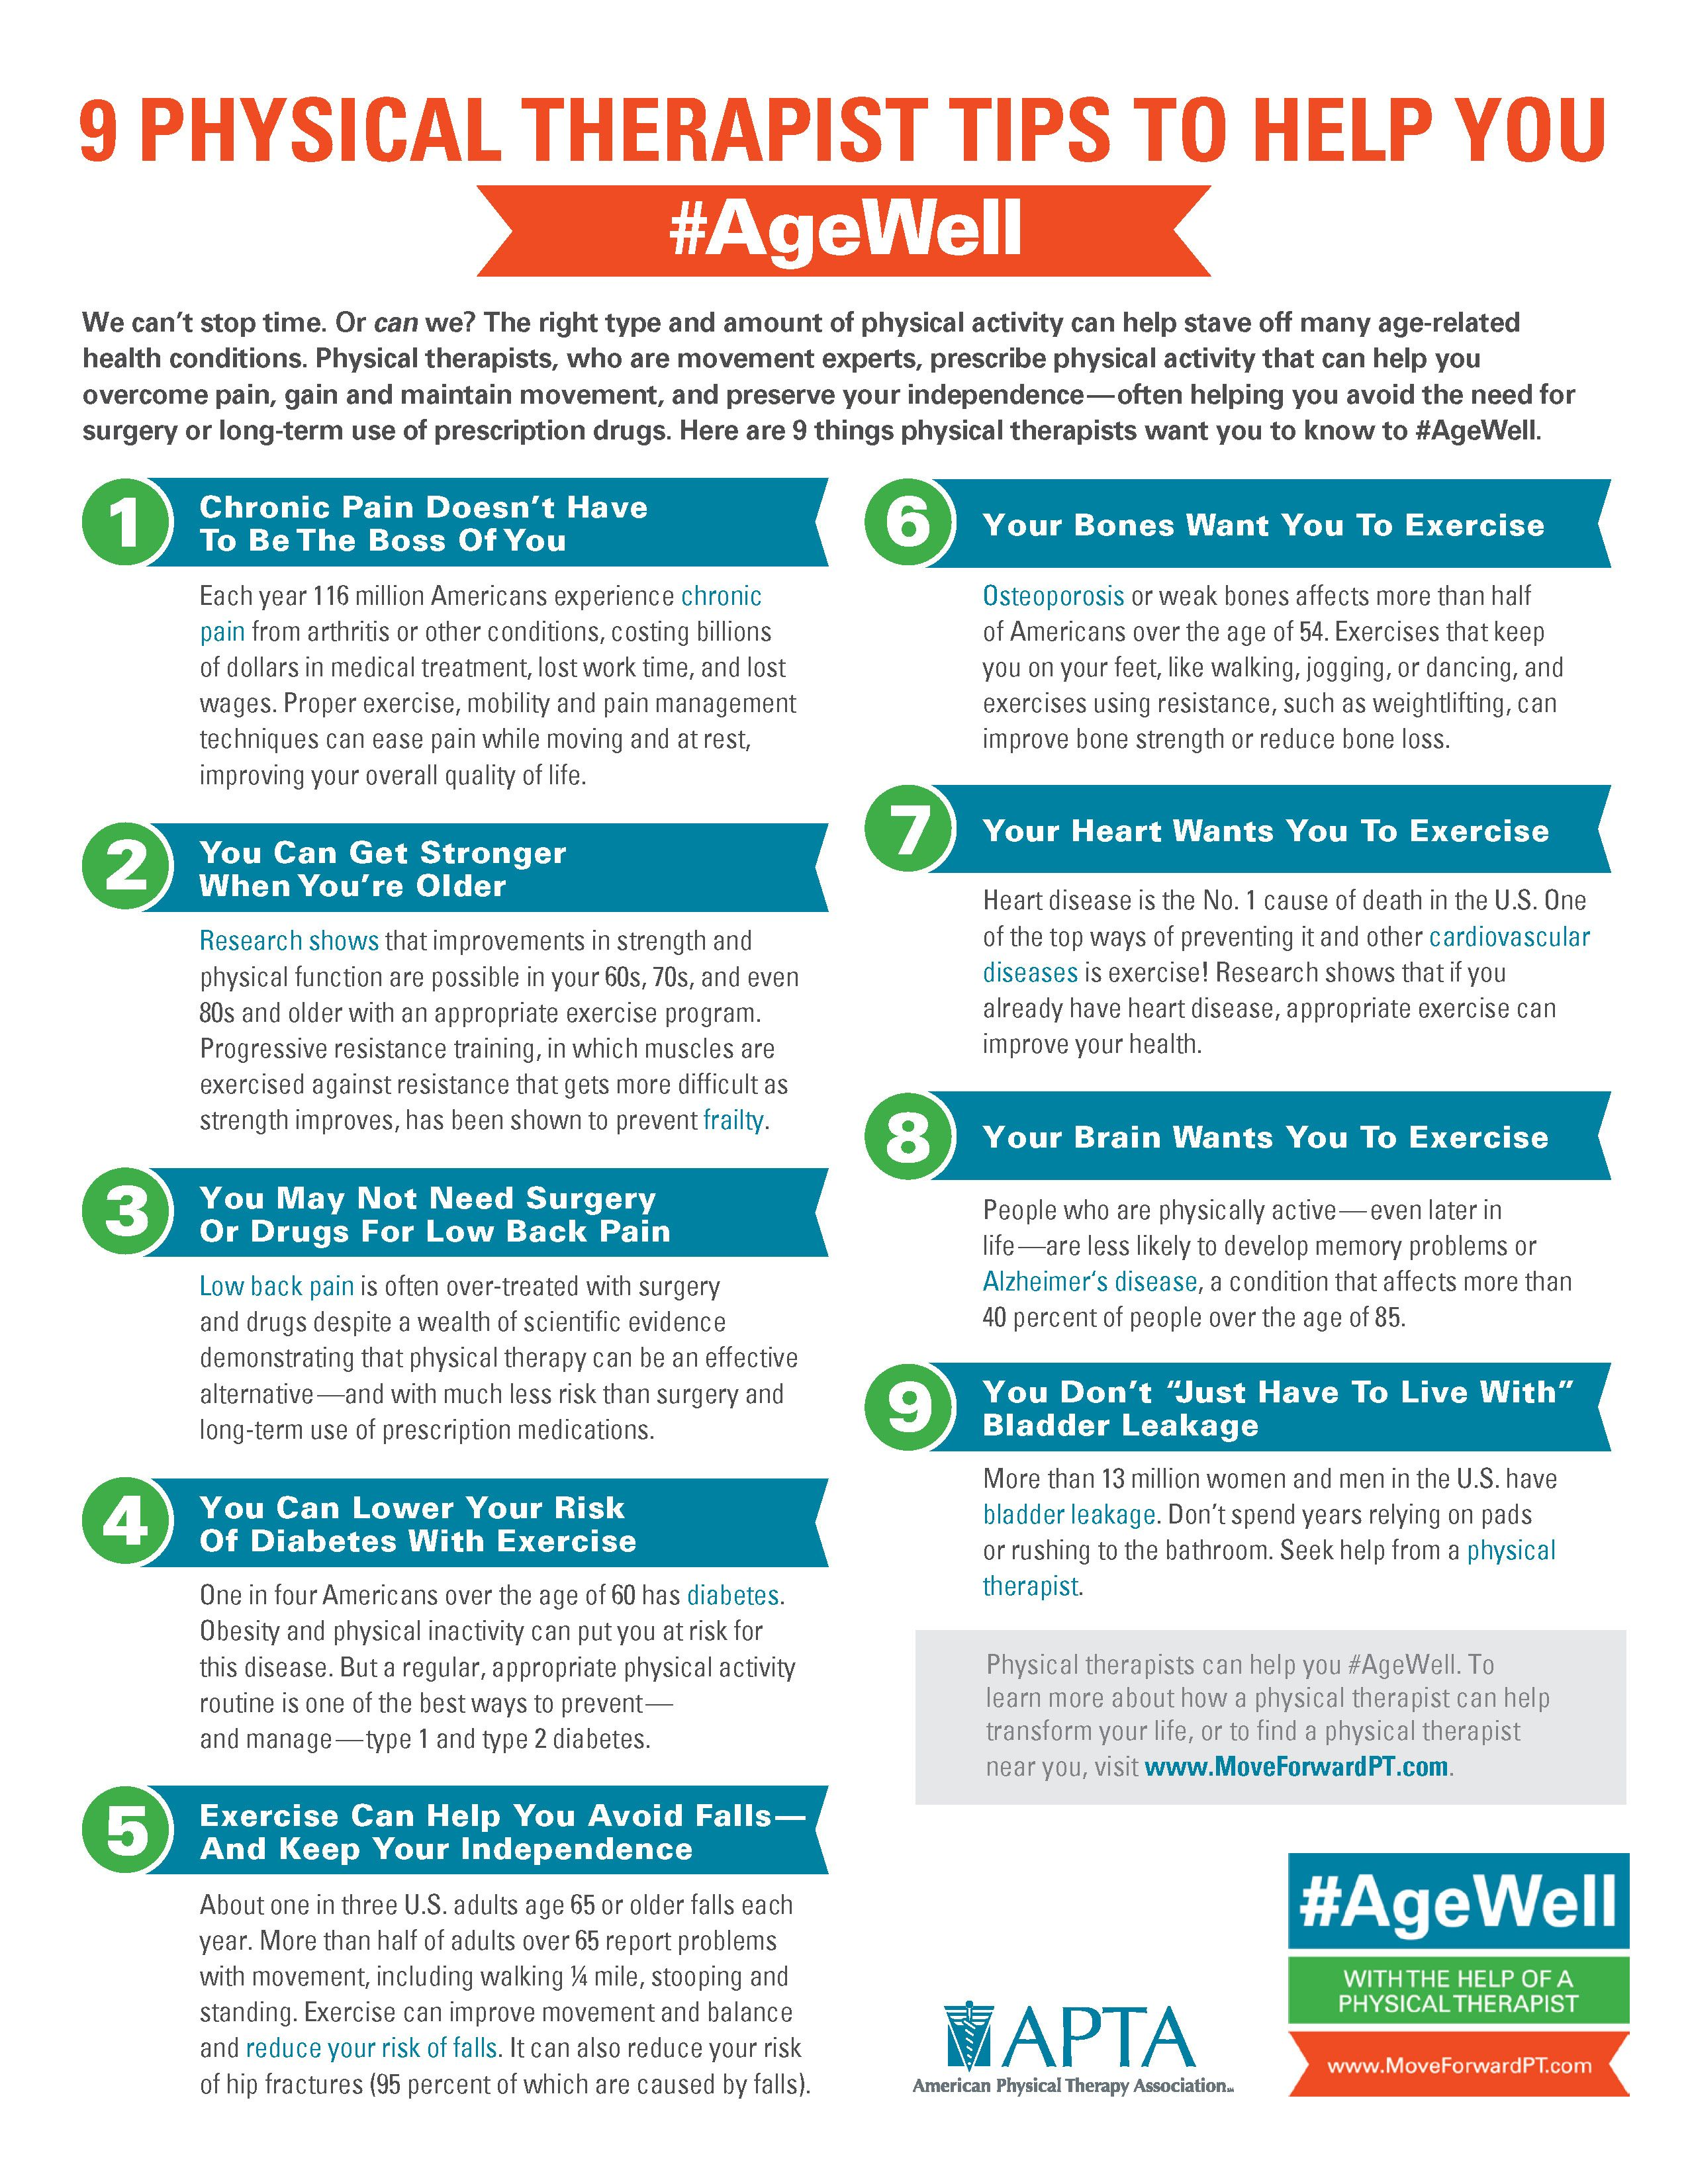 American physical therapy - 9 Physical Therapist Tips To Help You Agewell